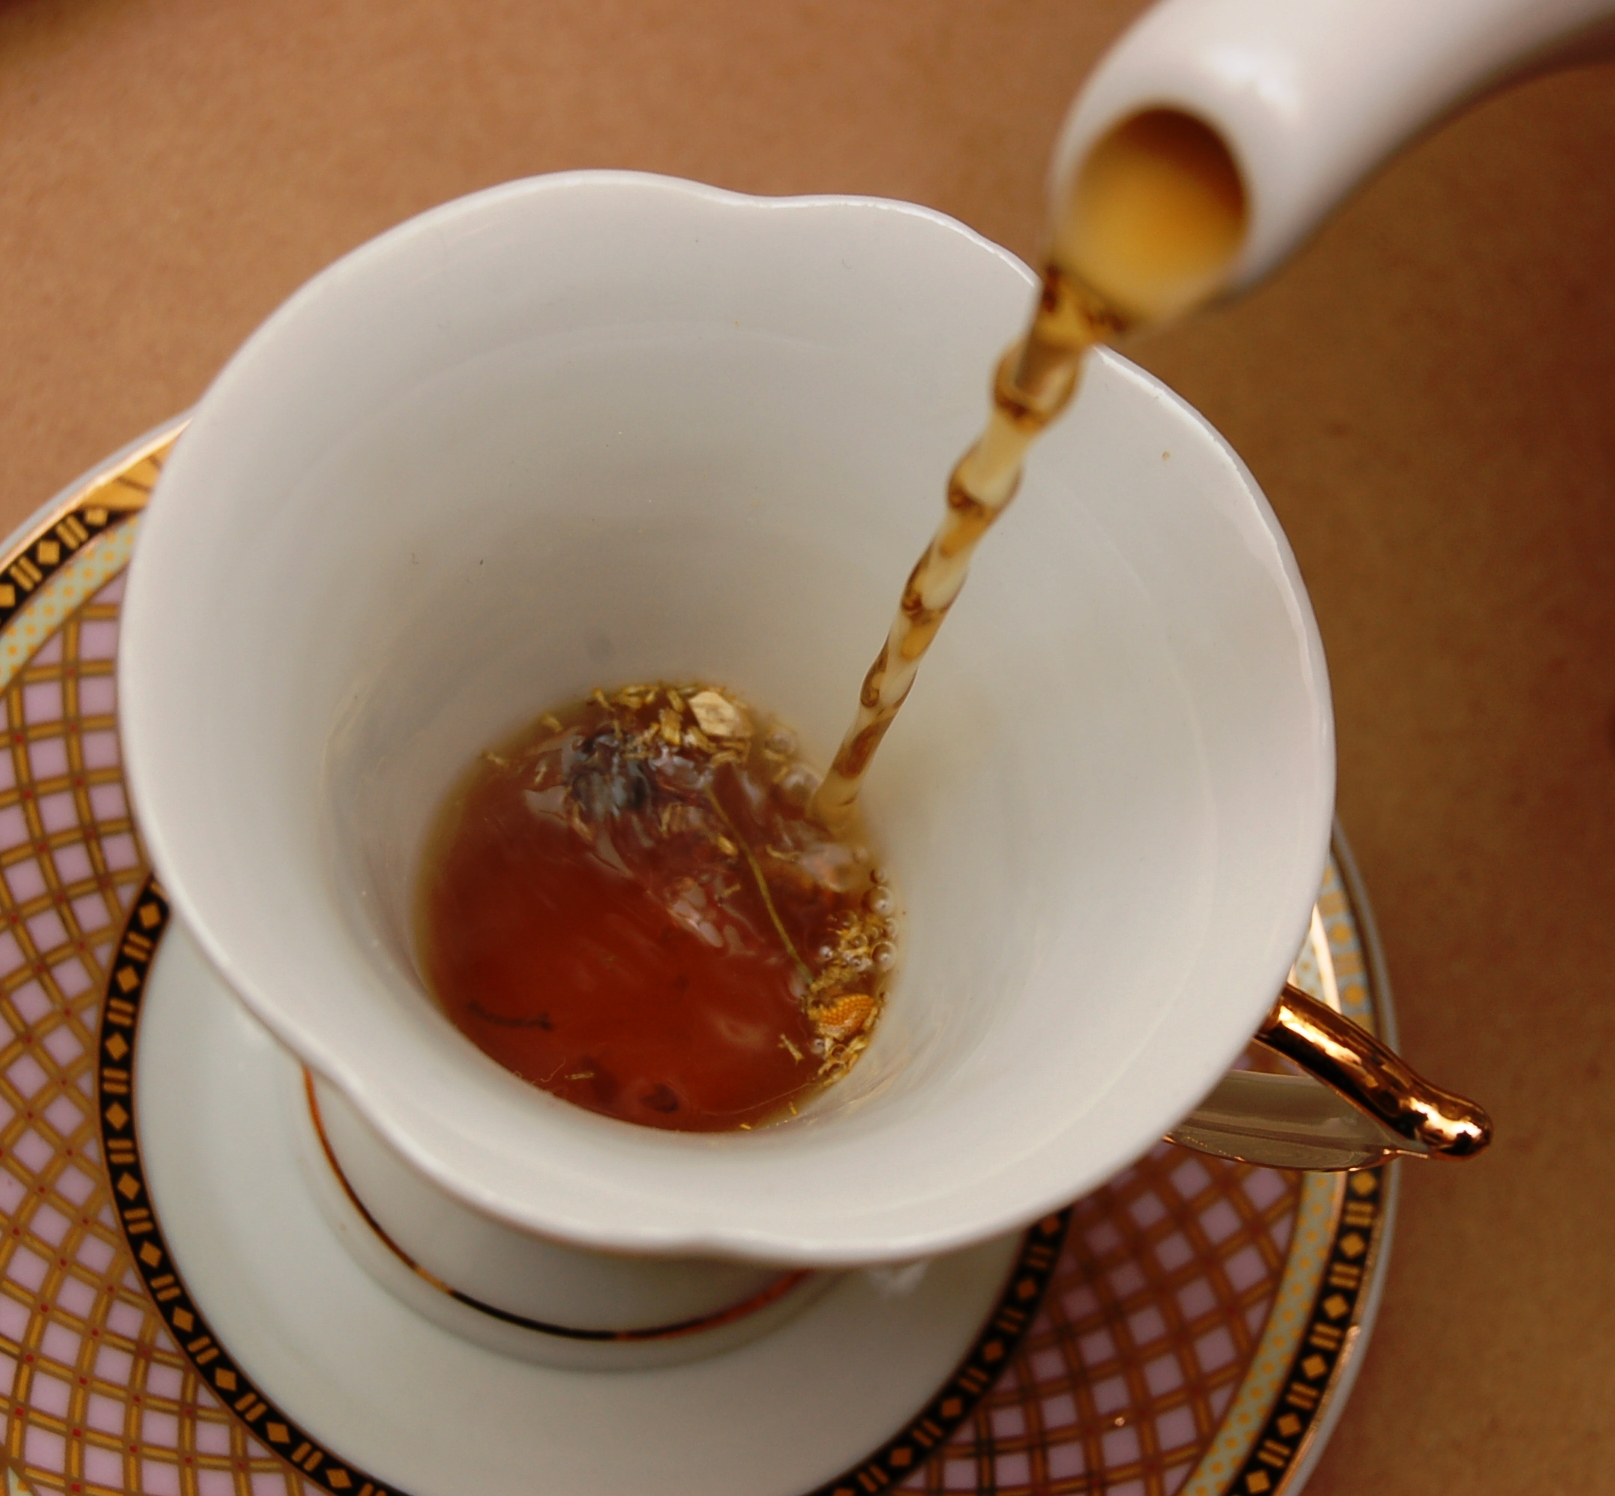 now you can have our mushroom tea anytime you want.